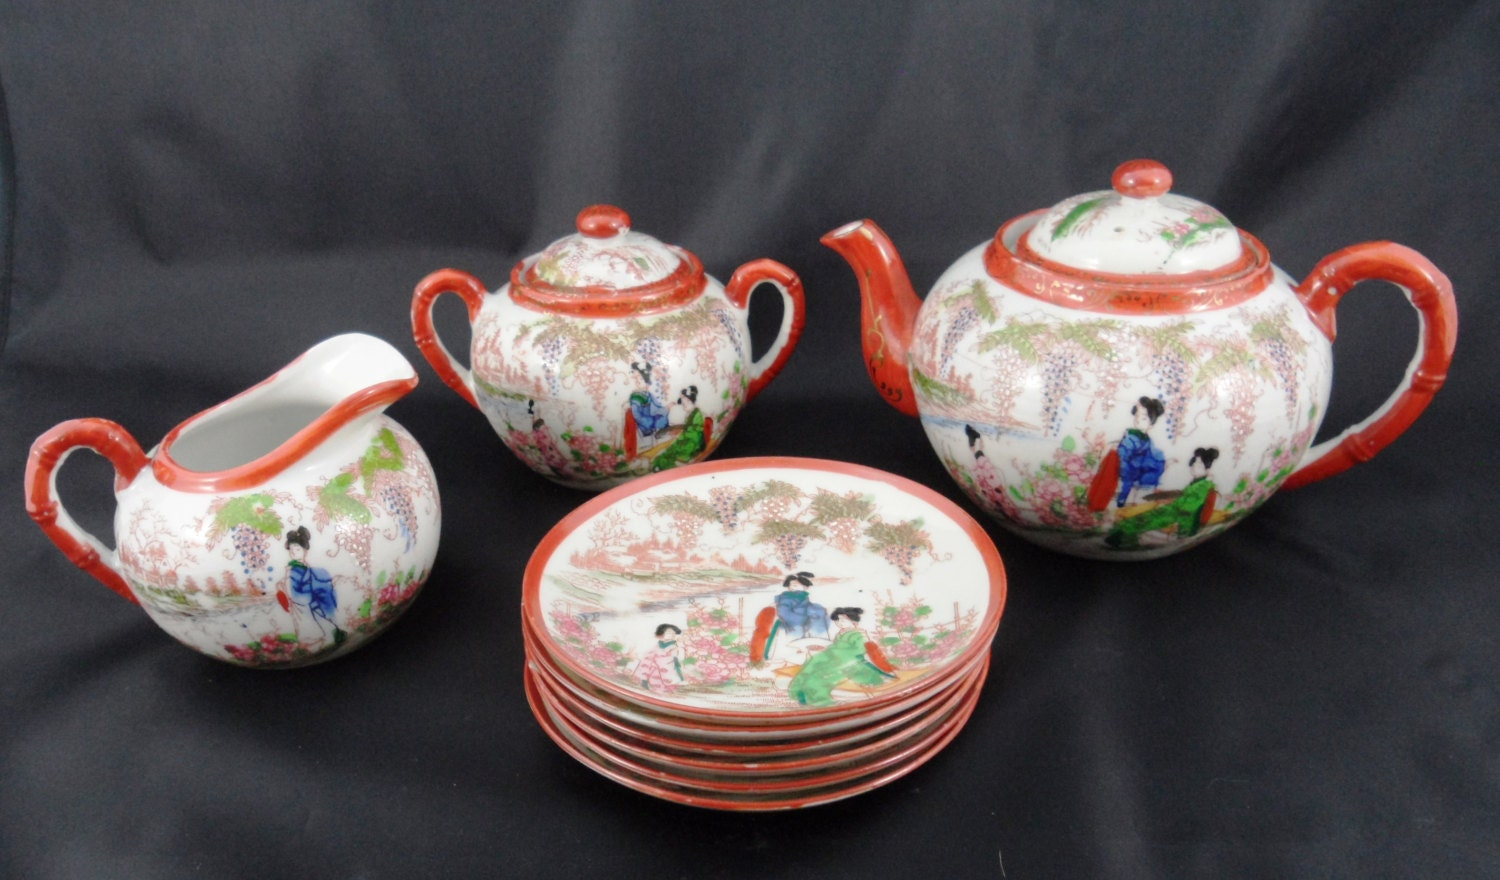 Lovely Antique Japanese Rokuzo landscape handpainted porcelain Tea set with  Geisha girls 1920's Signed